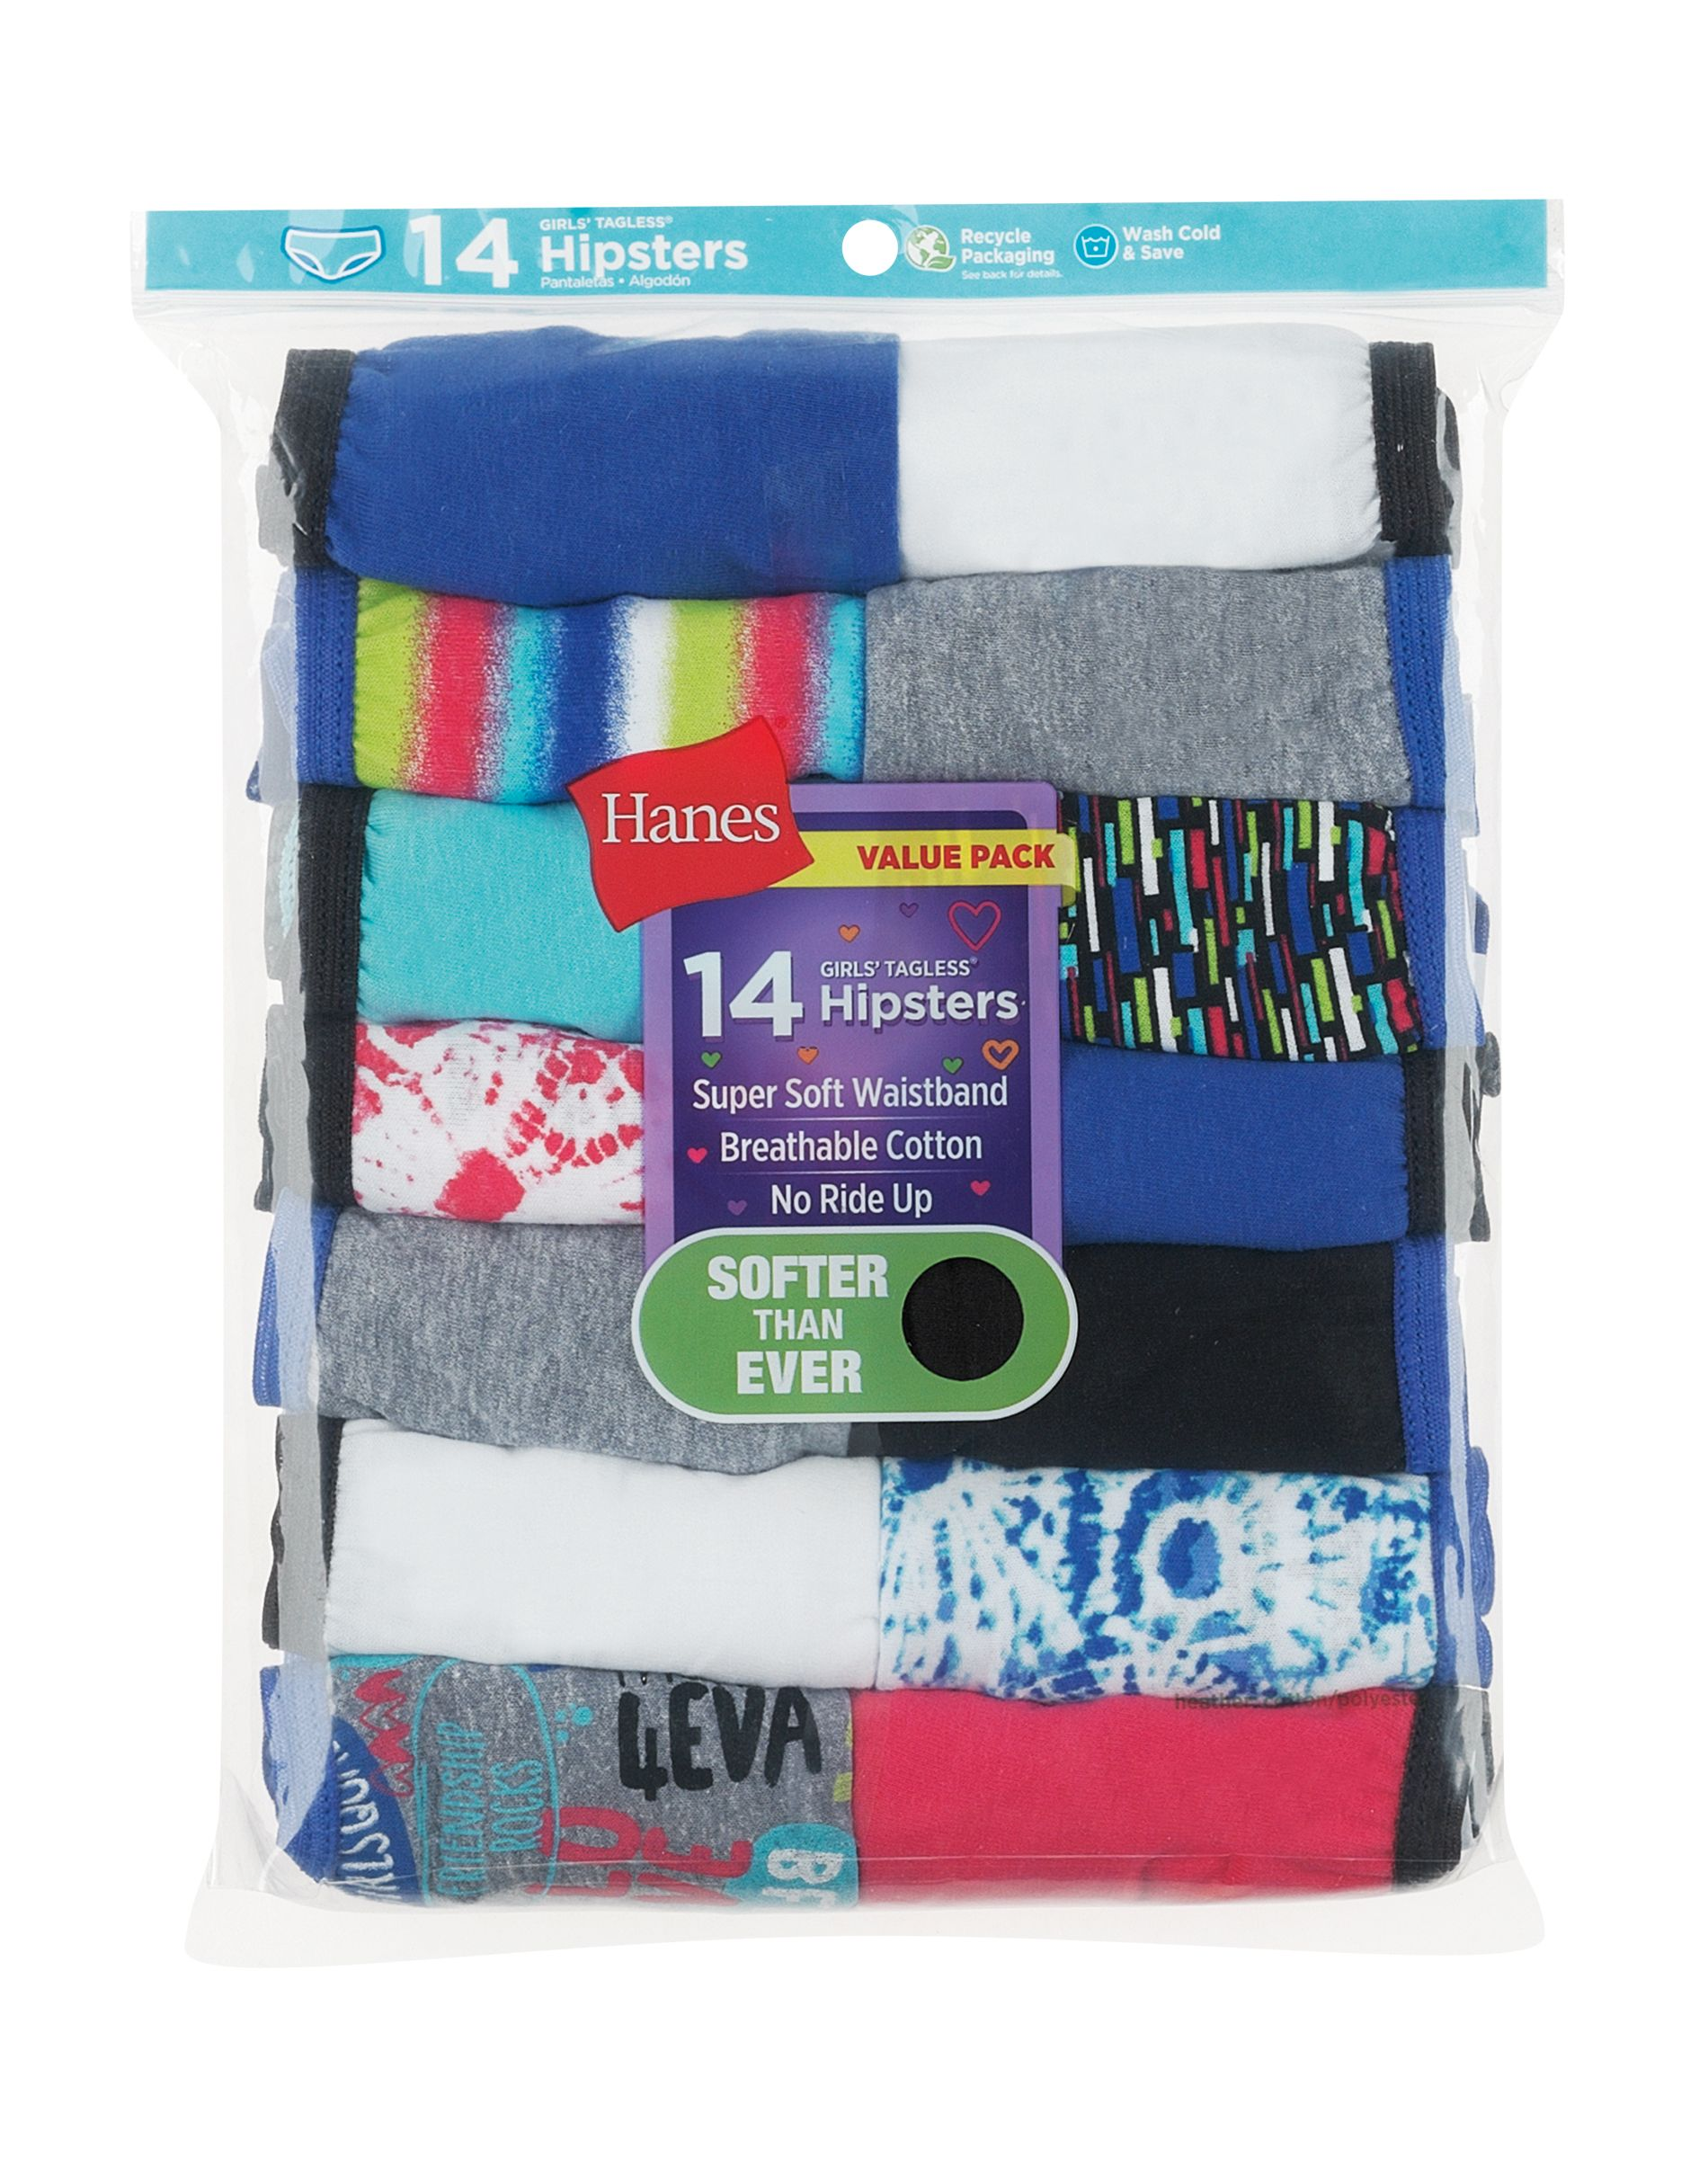 hanes girls' hipsters 14-pack youth Hanes